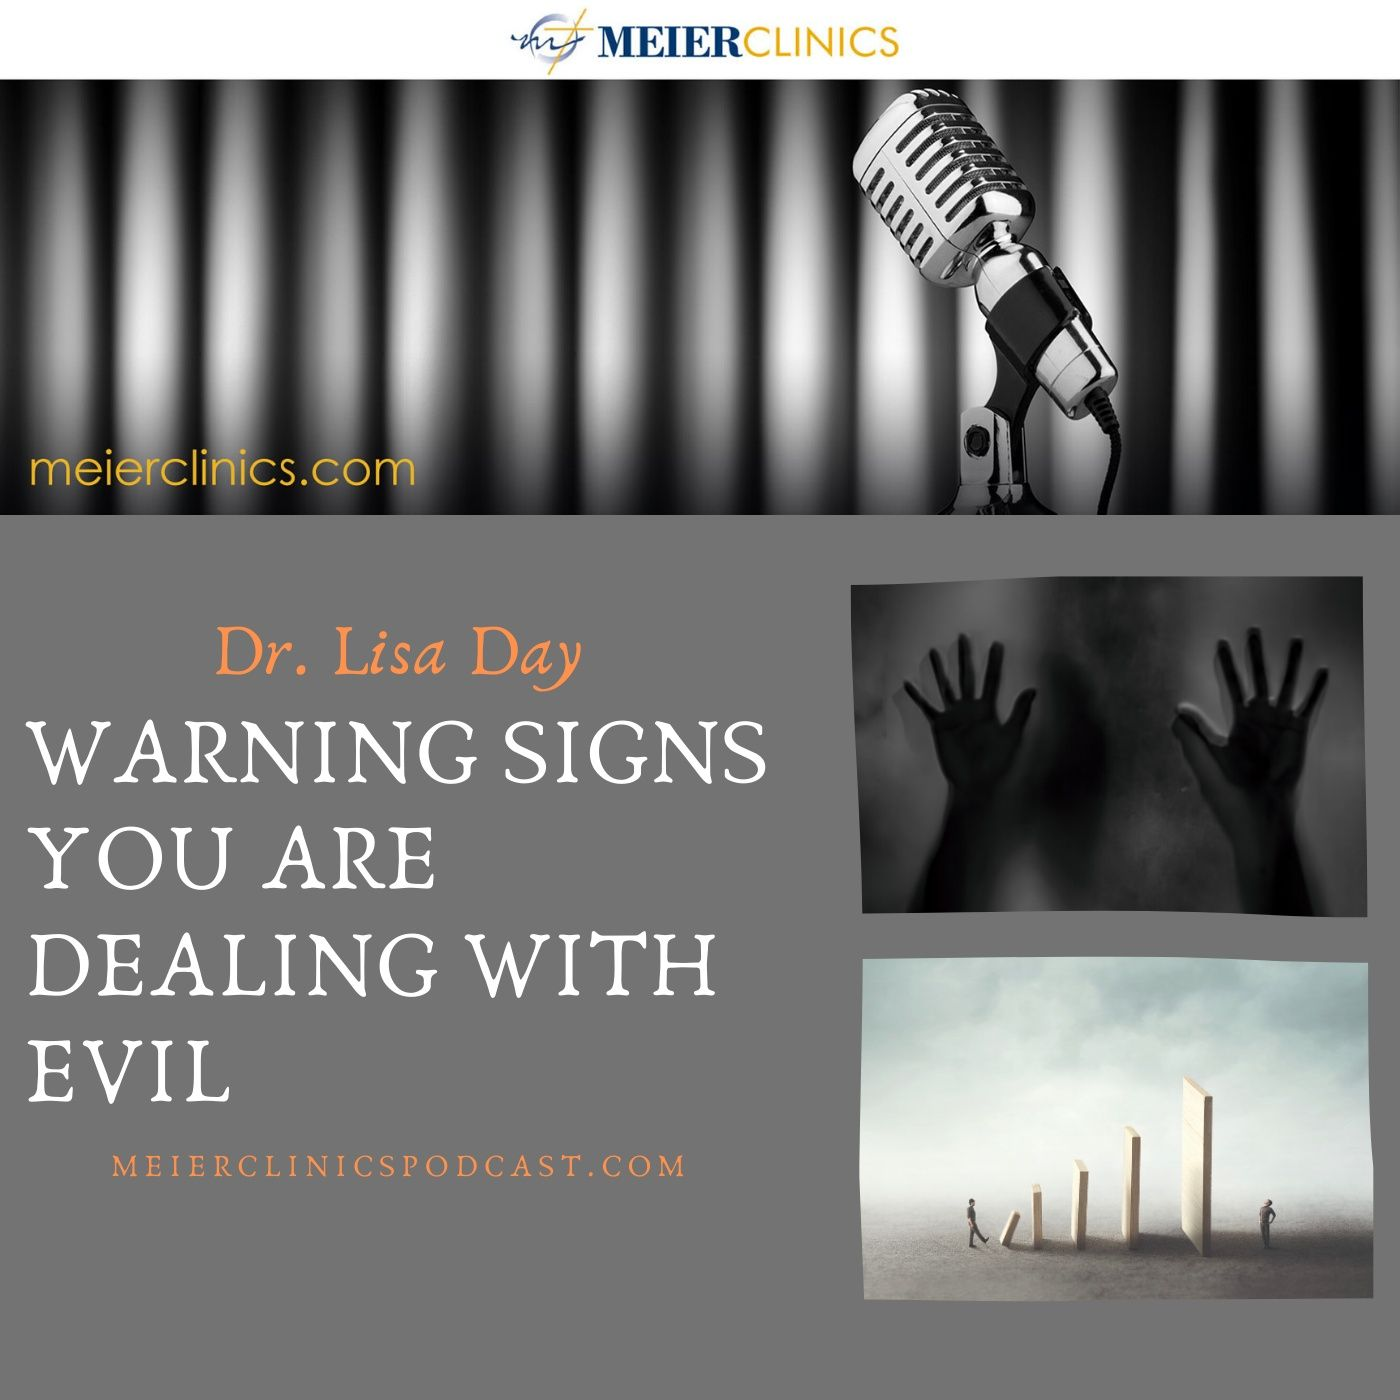 Warning Signs You Are Dealing With Evil